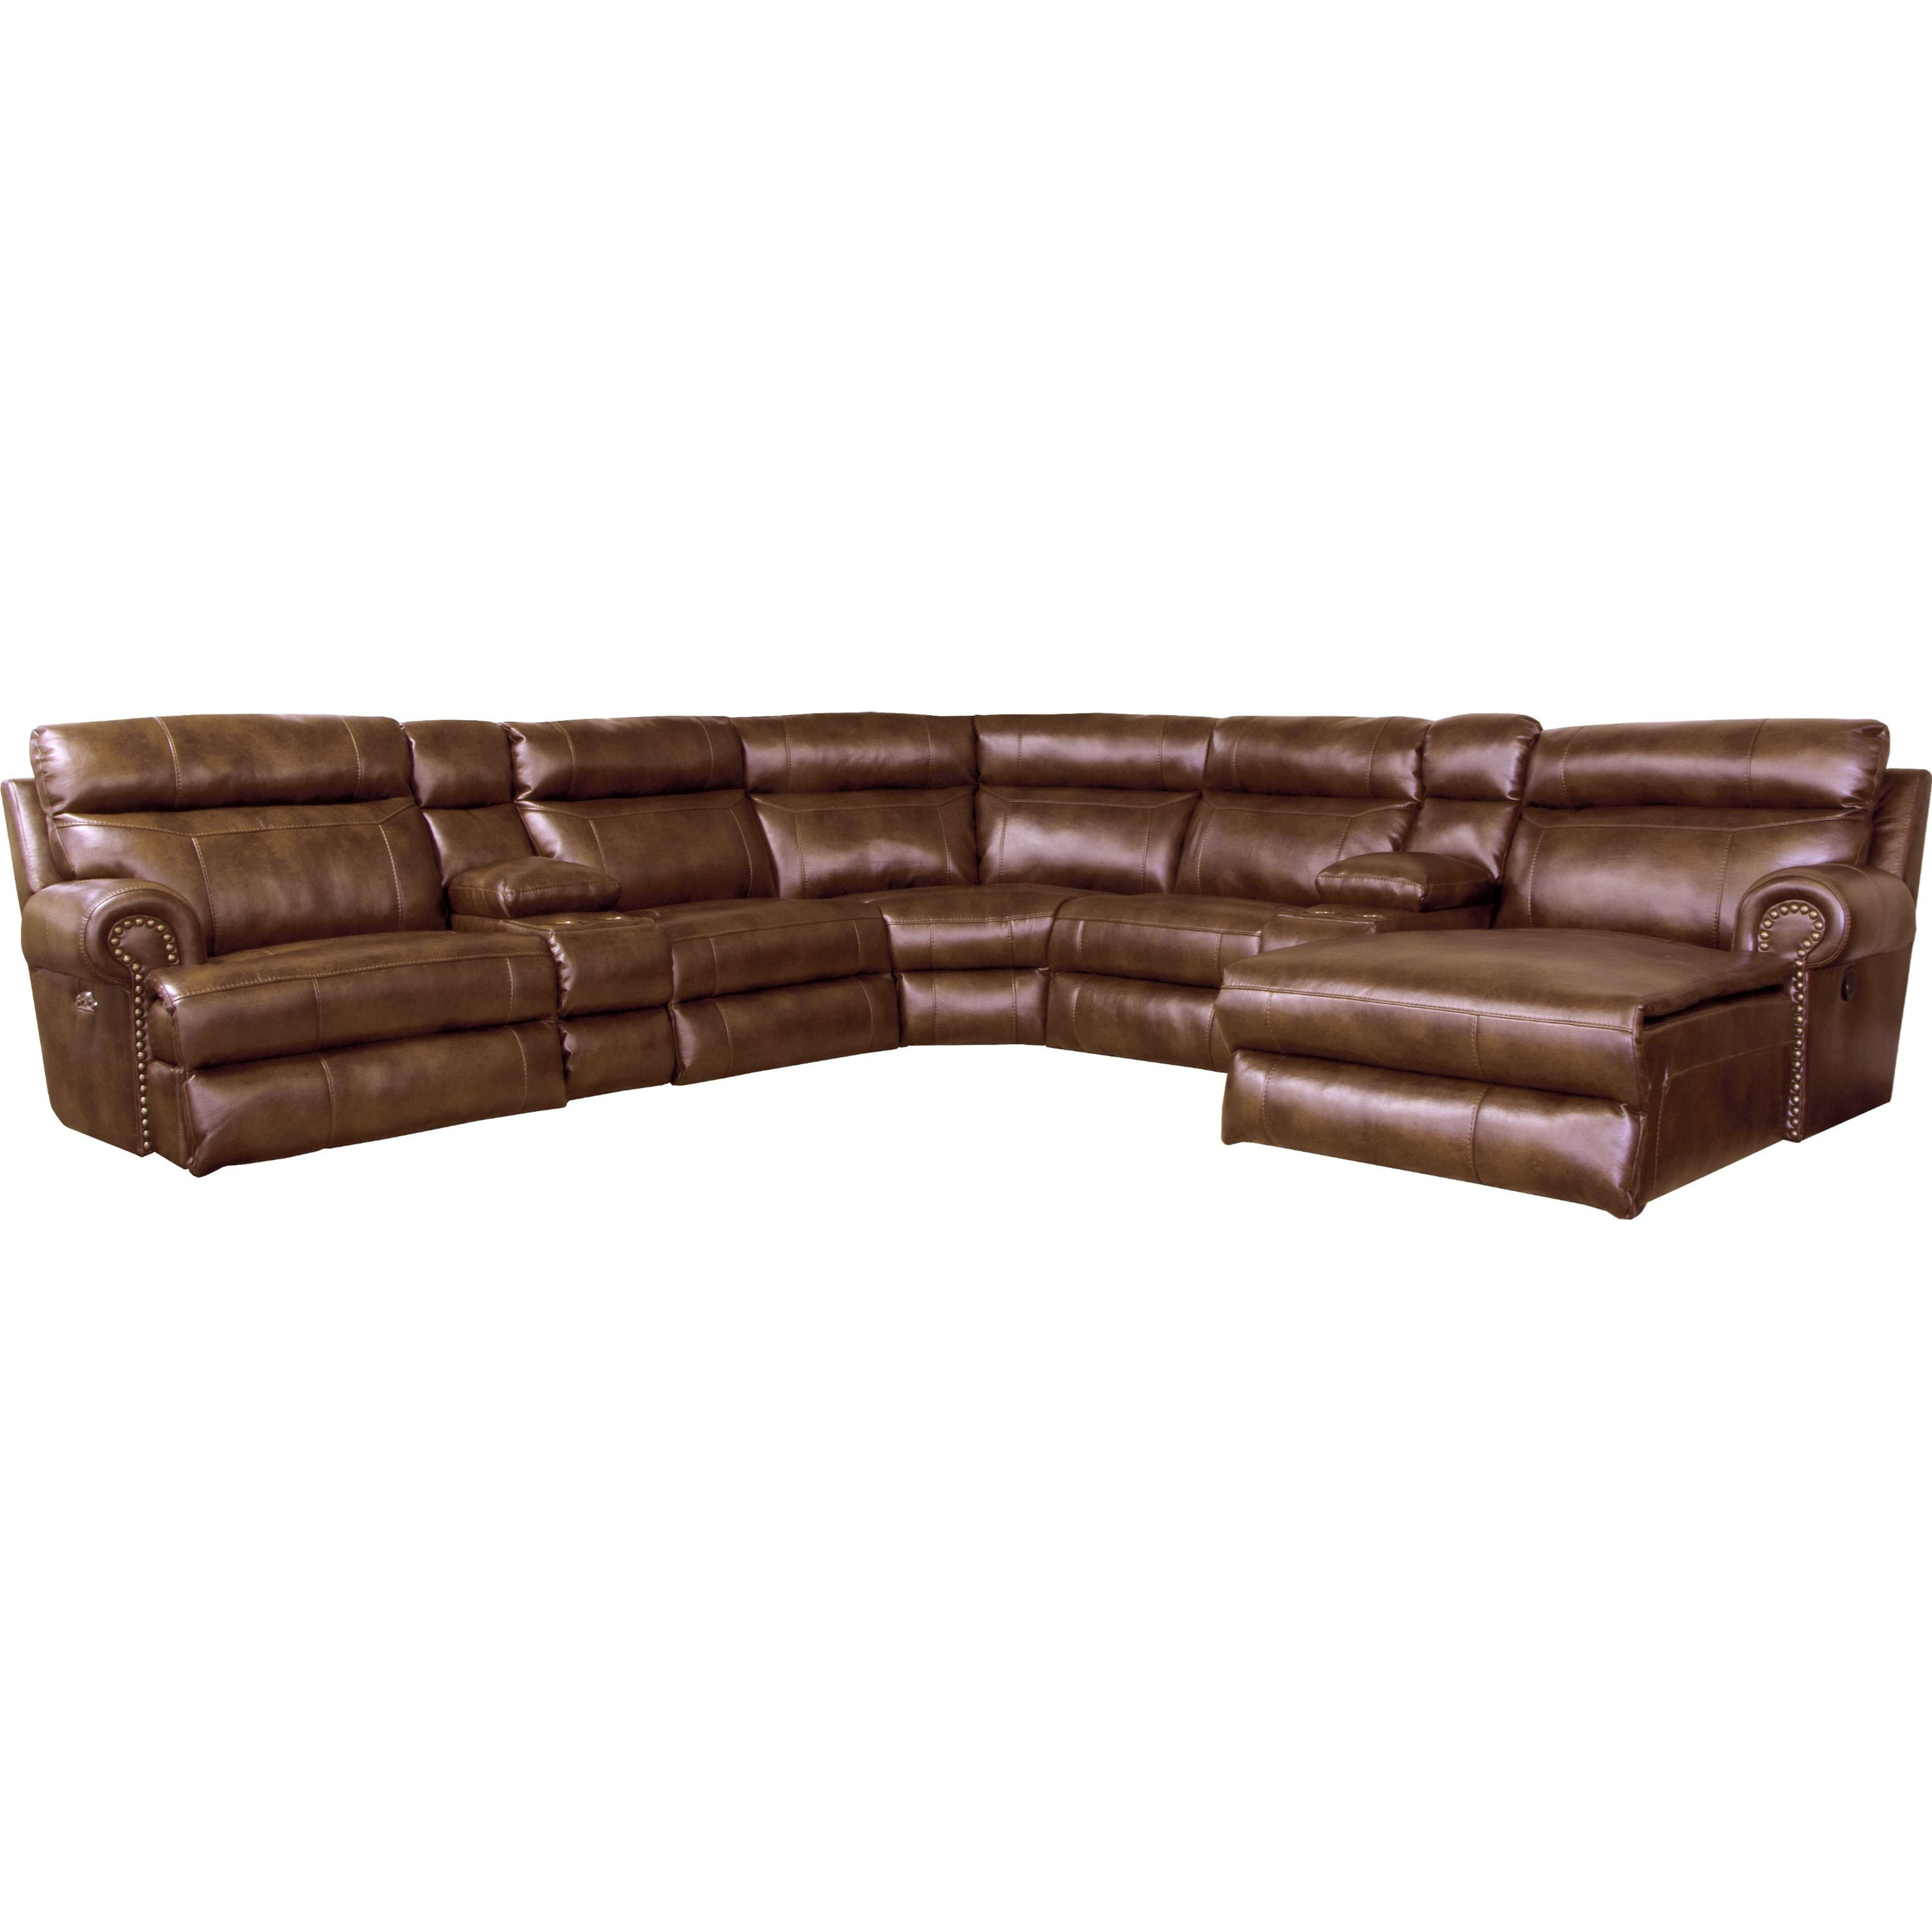 Catnapper Ashton Reclining Sectional Sofa with 5 Seats Miskelly